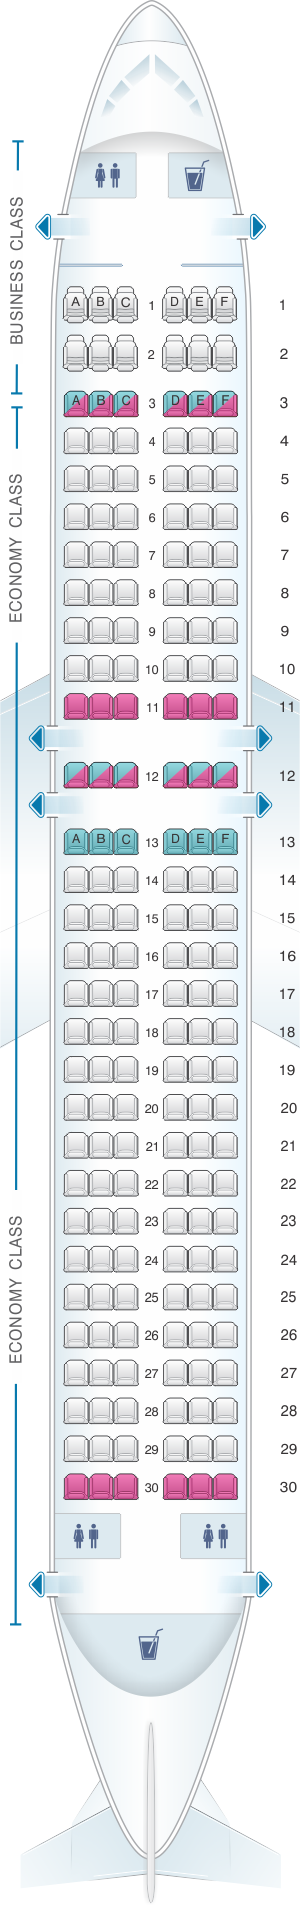 Seat map for Air Moldova Airbus A320